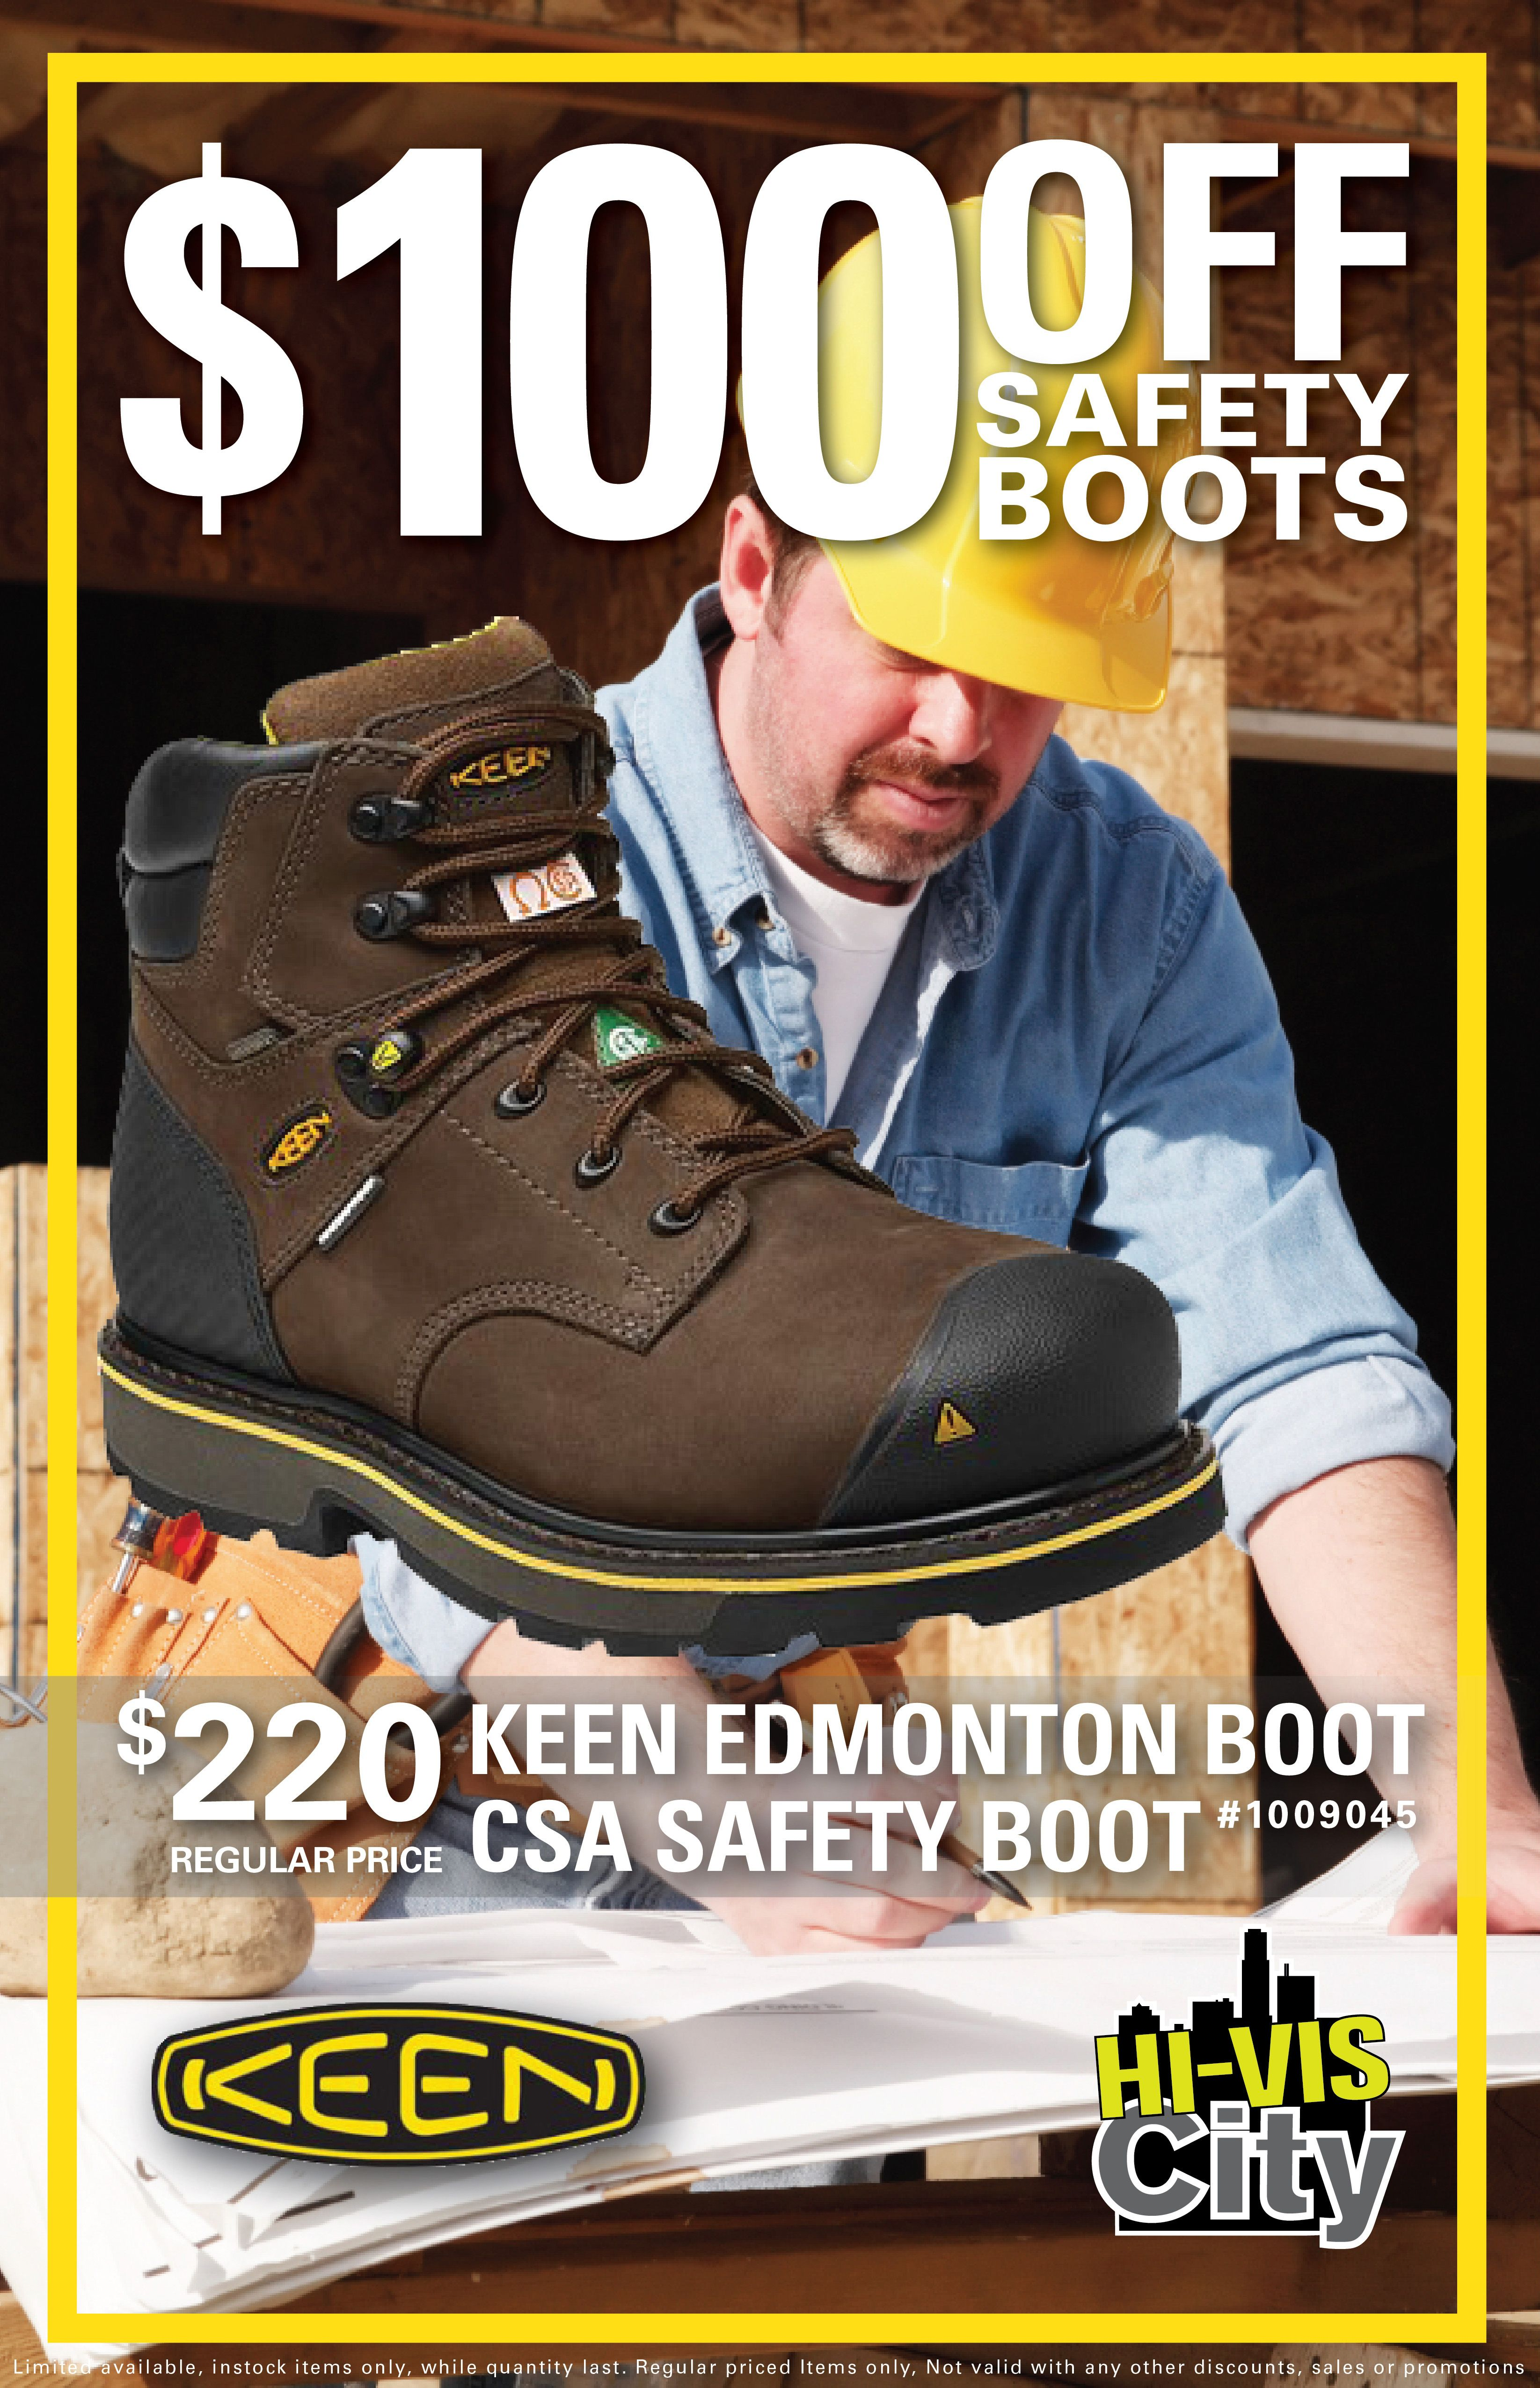 Pin by Urban Tactical on Poster Ads Safety boots, Boots